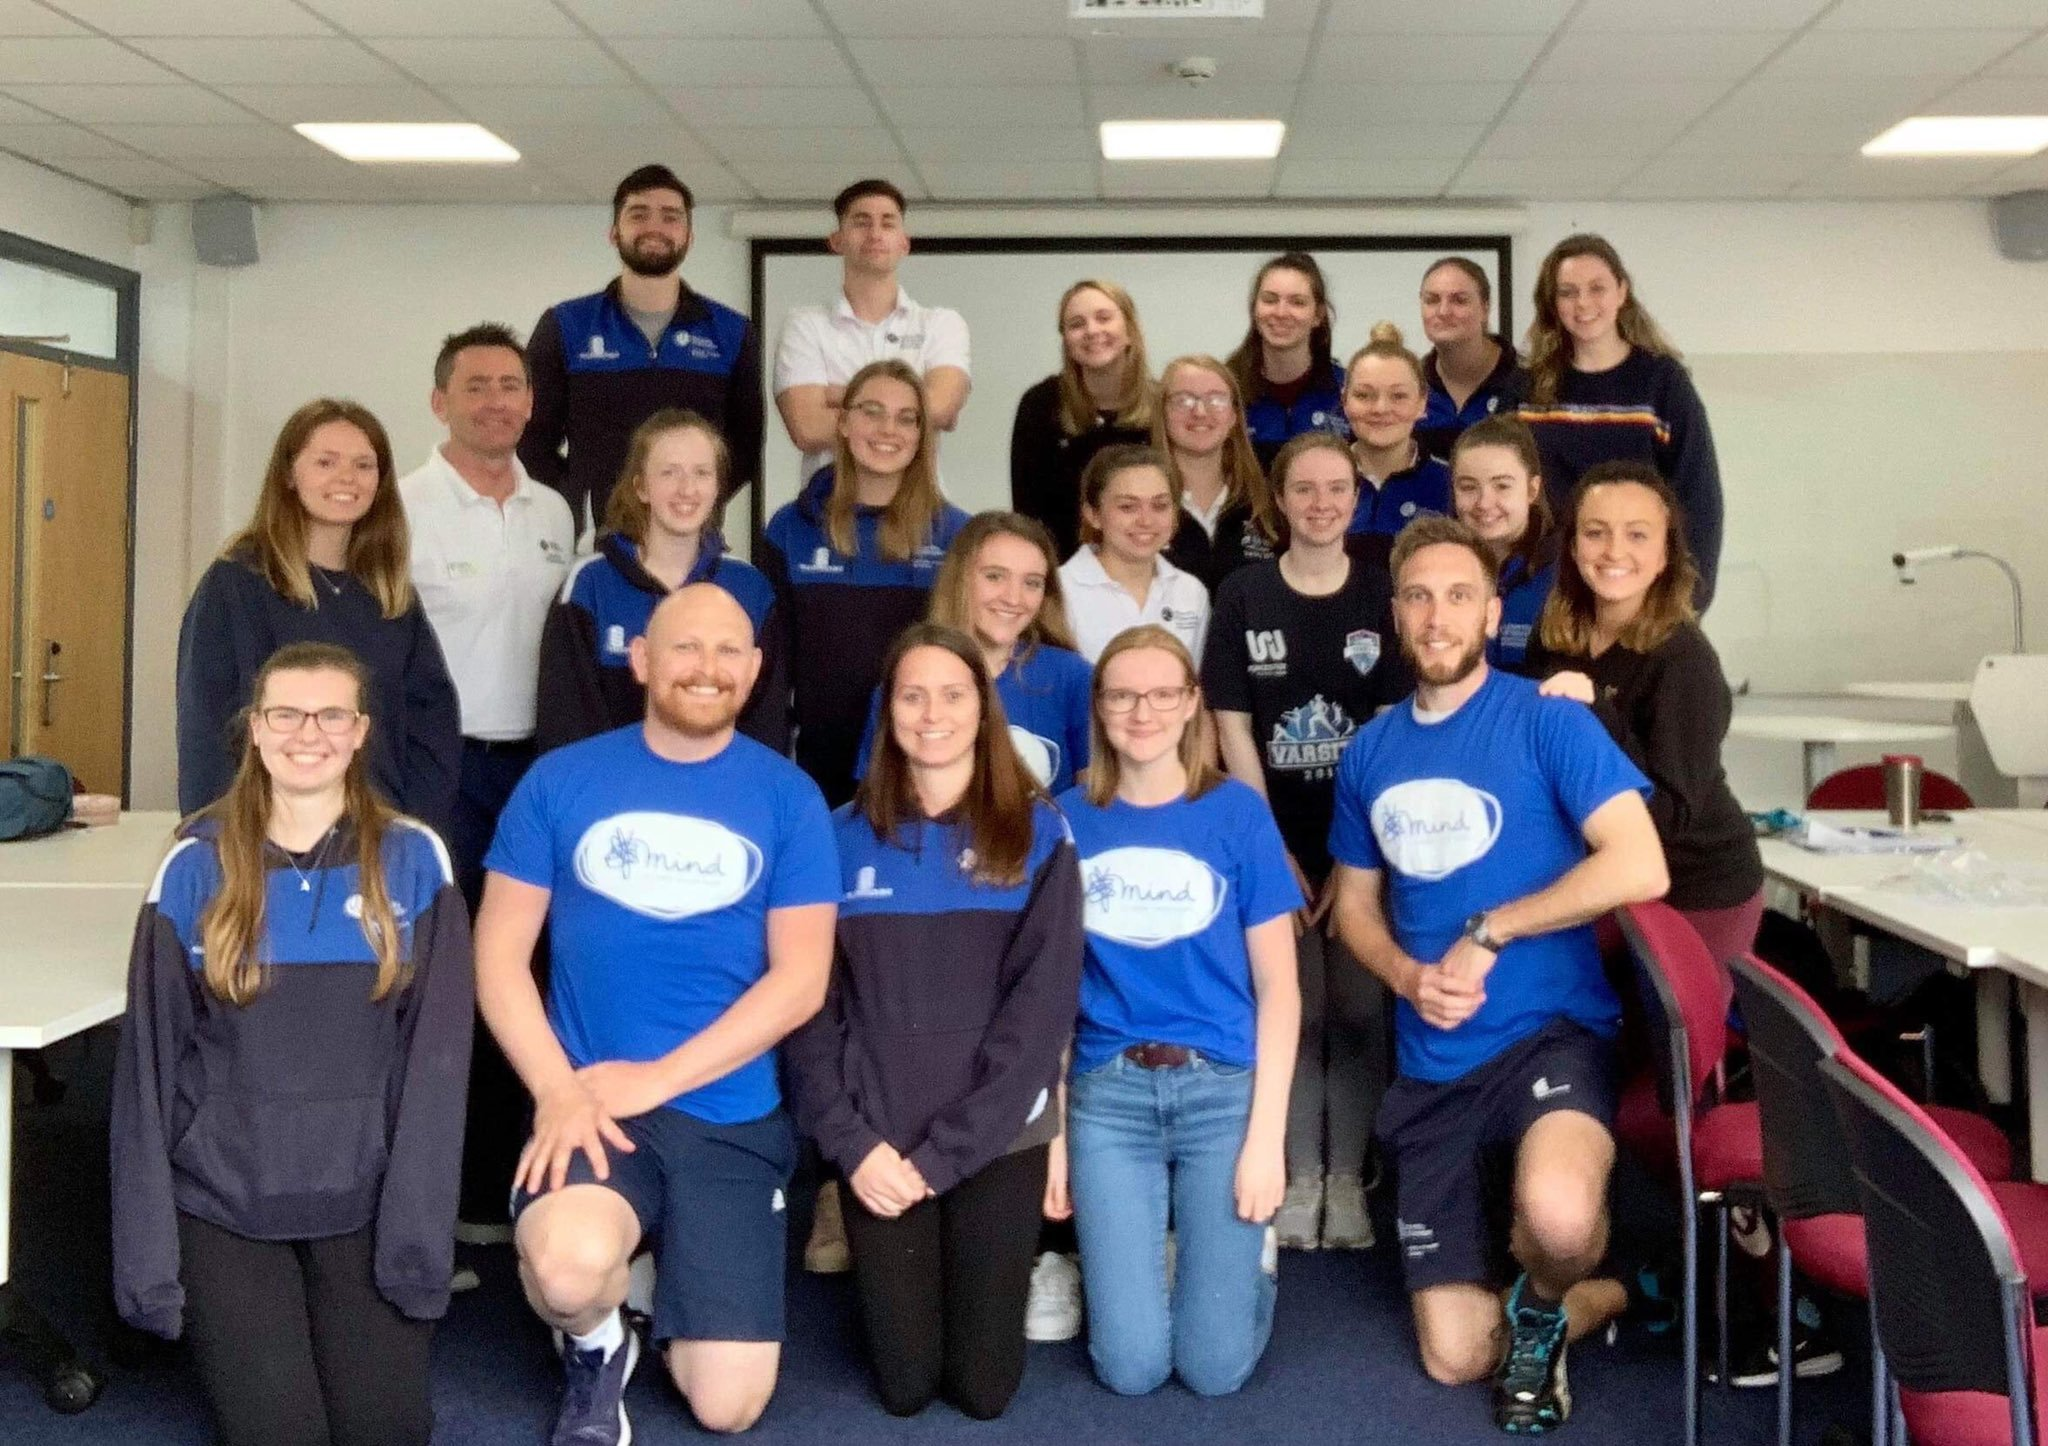 Physiotherapy students to take on Three peaks challenge